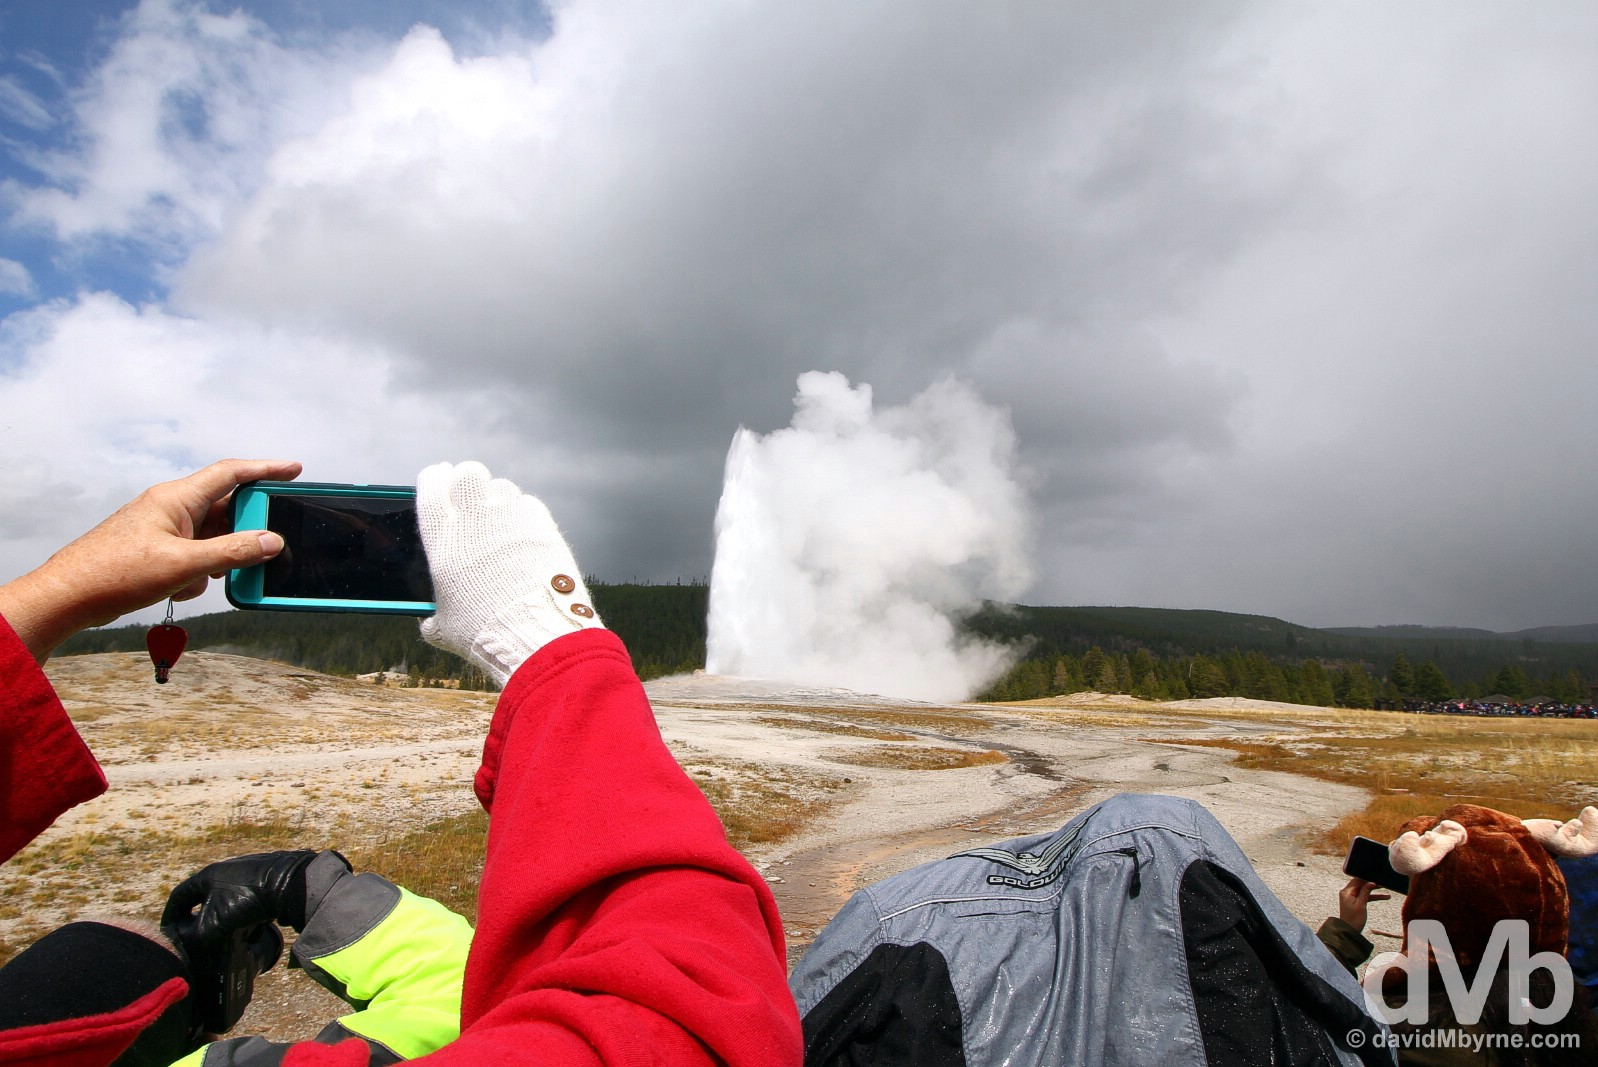 Capturing an Old Faithful eruption in Upper Geyser Basin, Yellowstone National Park, Wyoming, USA. September 5, 2016.